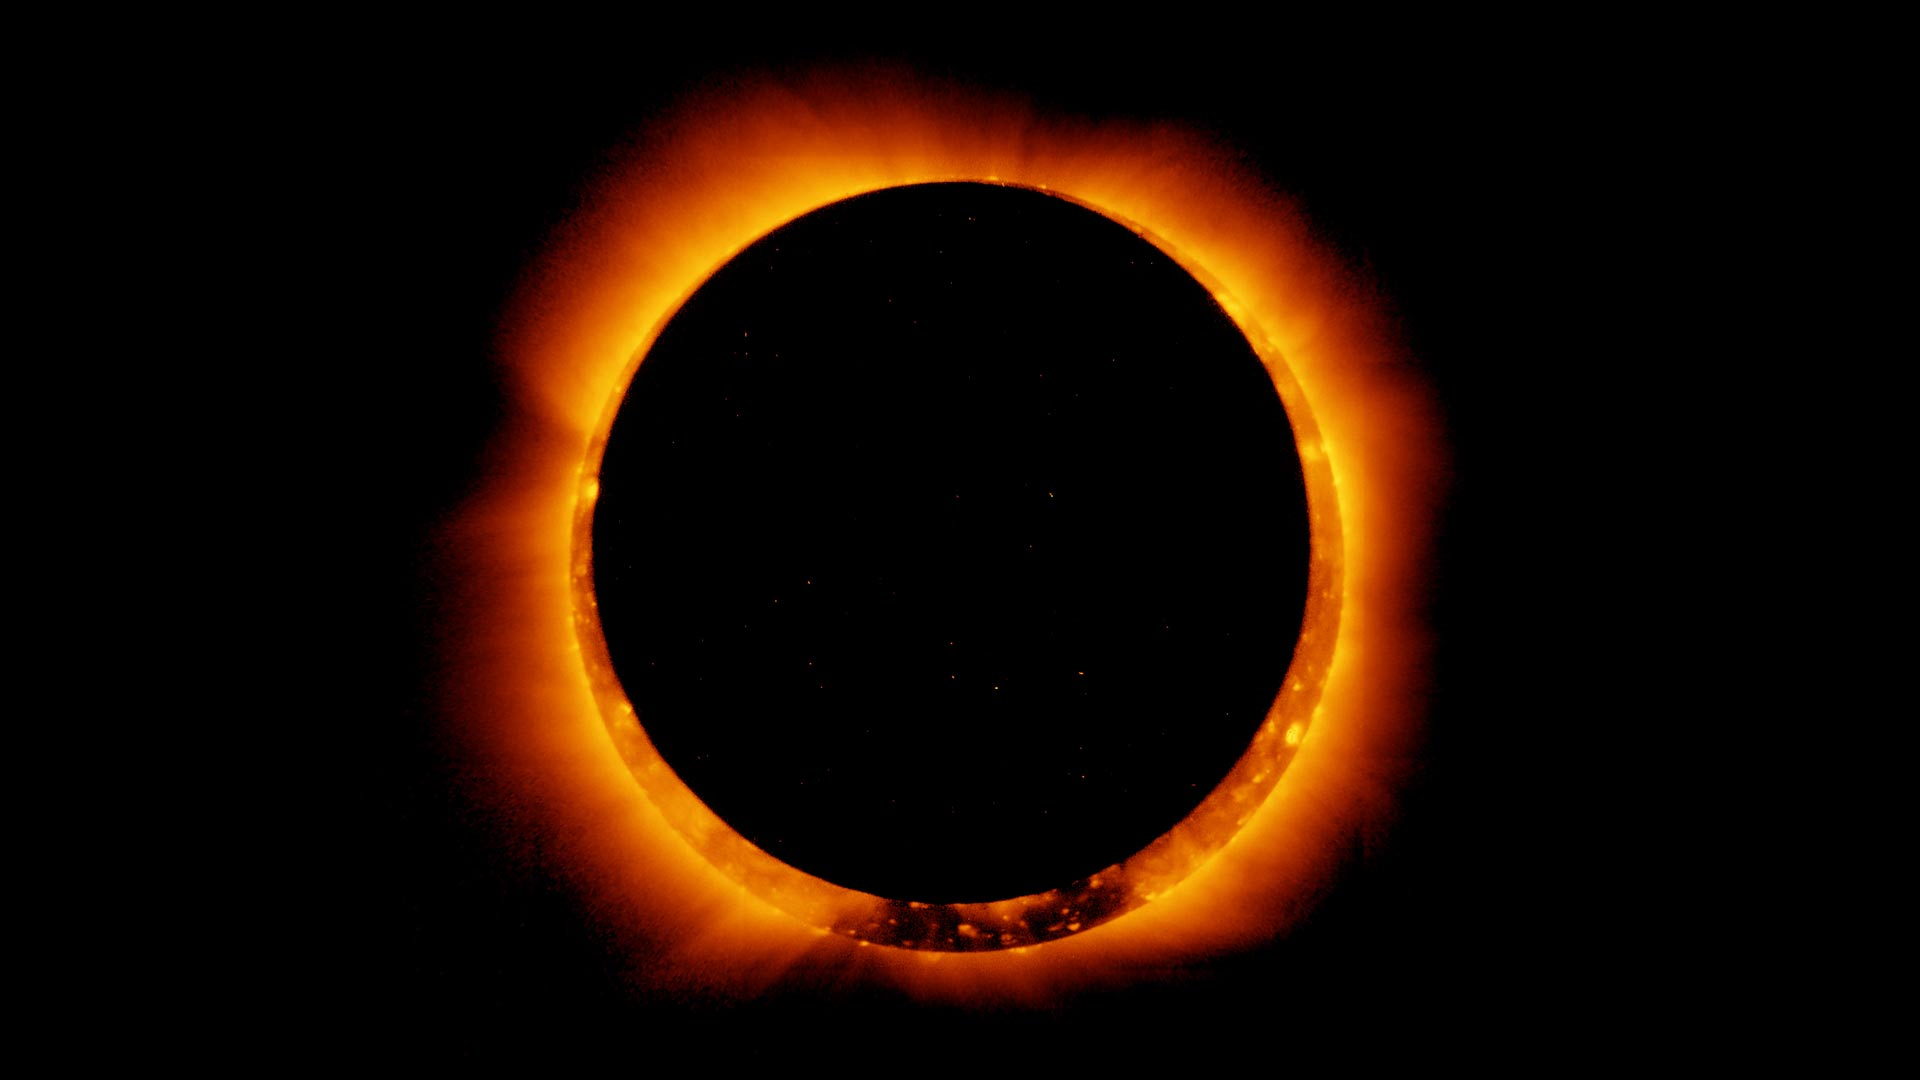 On Jan. 4, 2011, the Hinode satellite captured these breathtaking images of an annular solar eclipse.